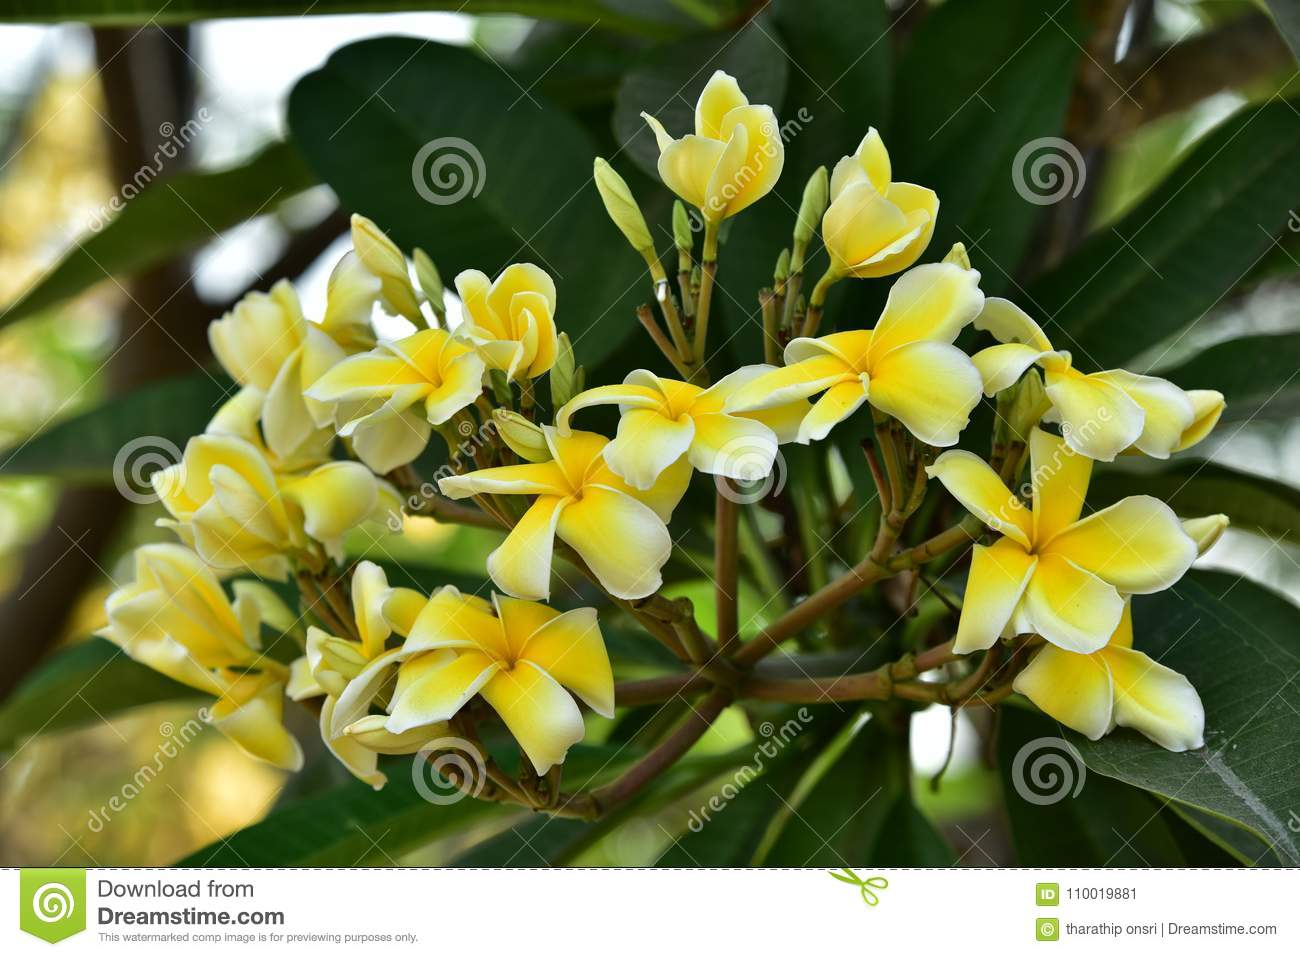 Spring Background With Beautiful Yellow Flowersllow Flowers On A